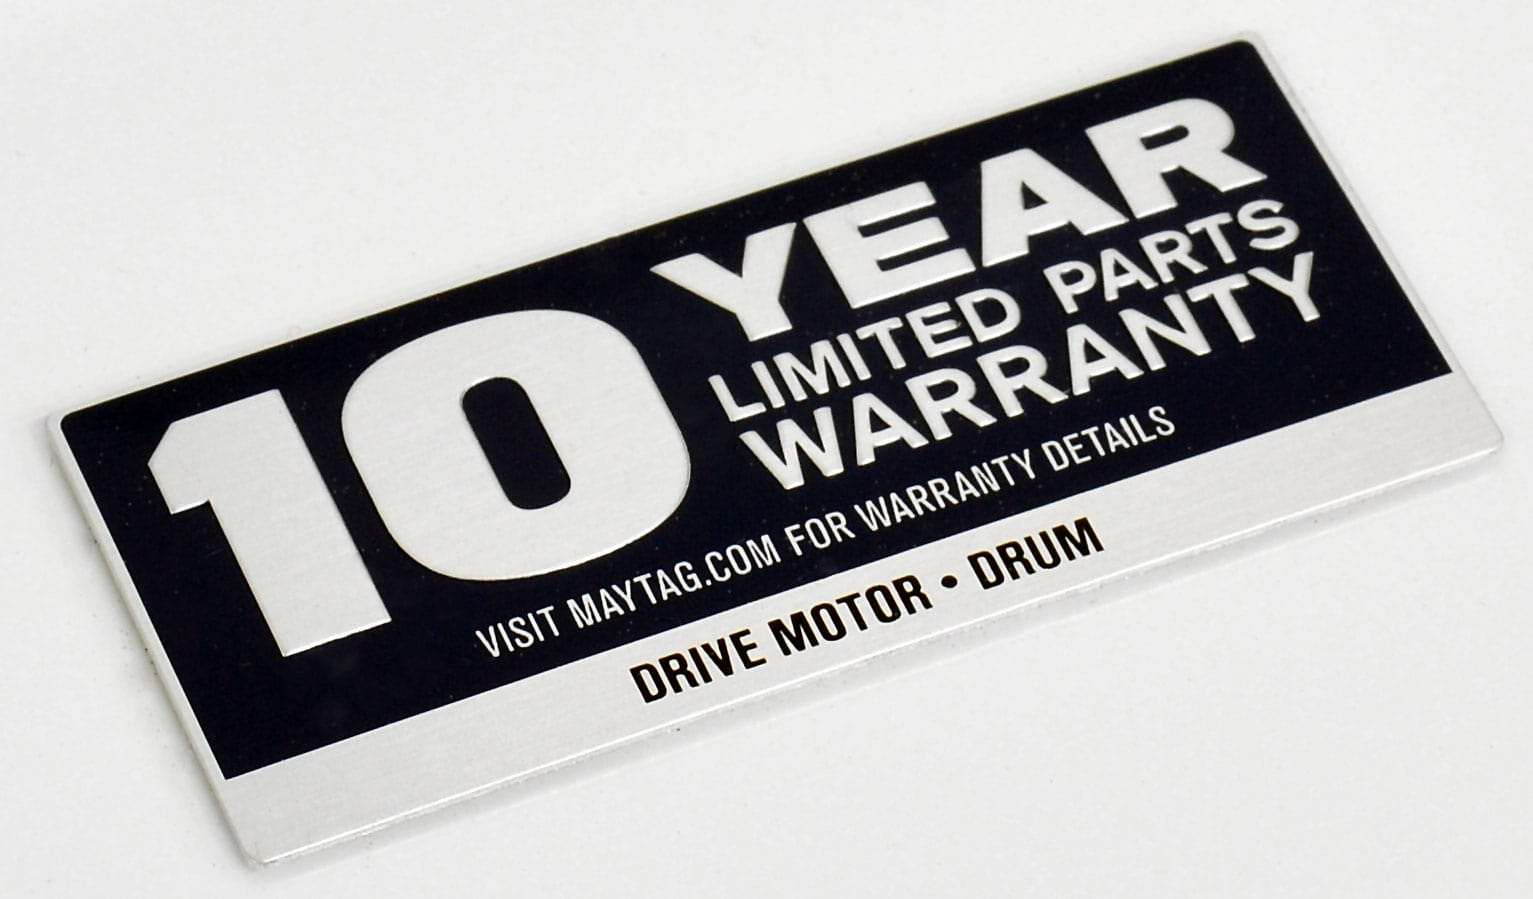 Maytag offers an extended warranty on the Centennial MEDC215EW's drive motor and drum.